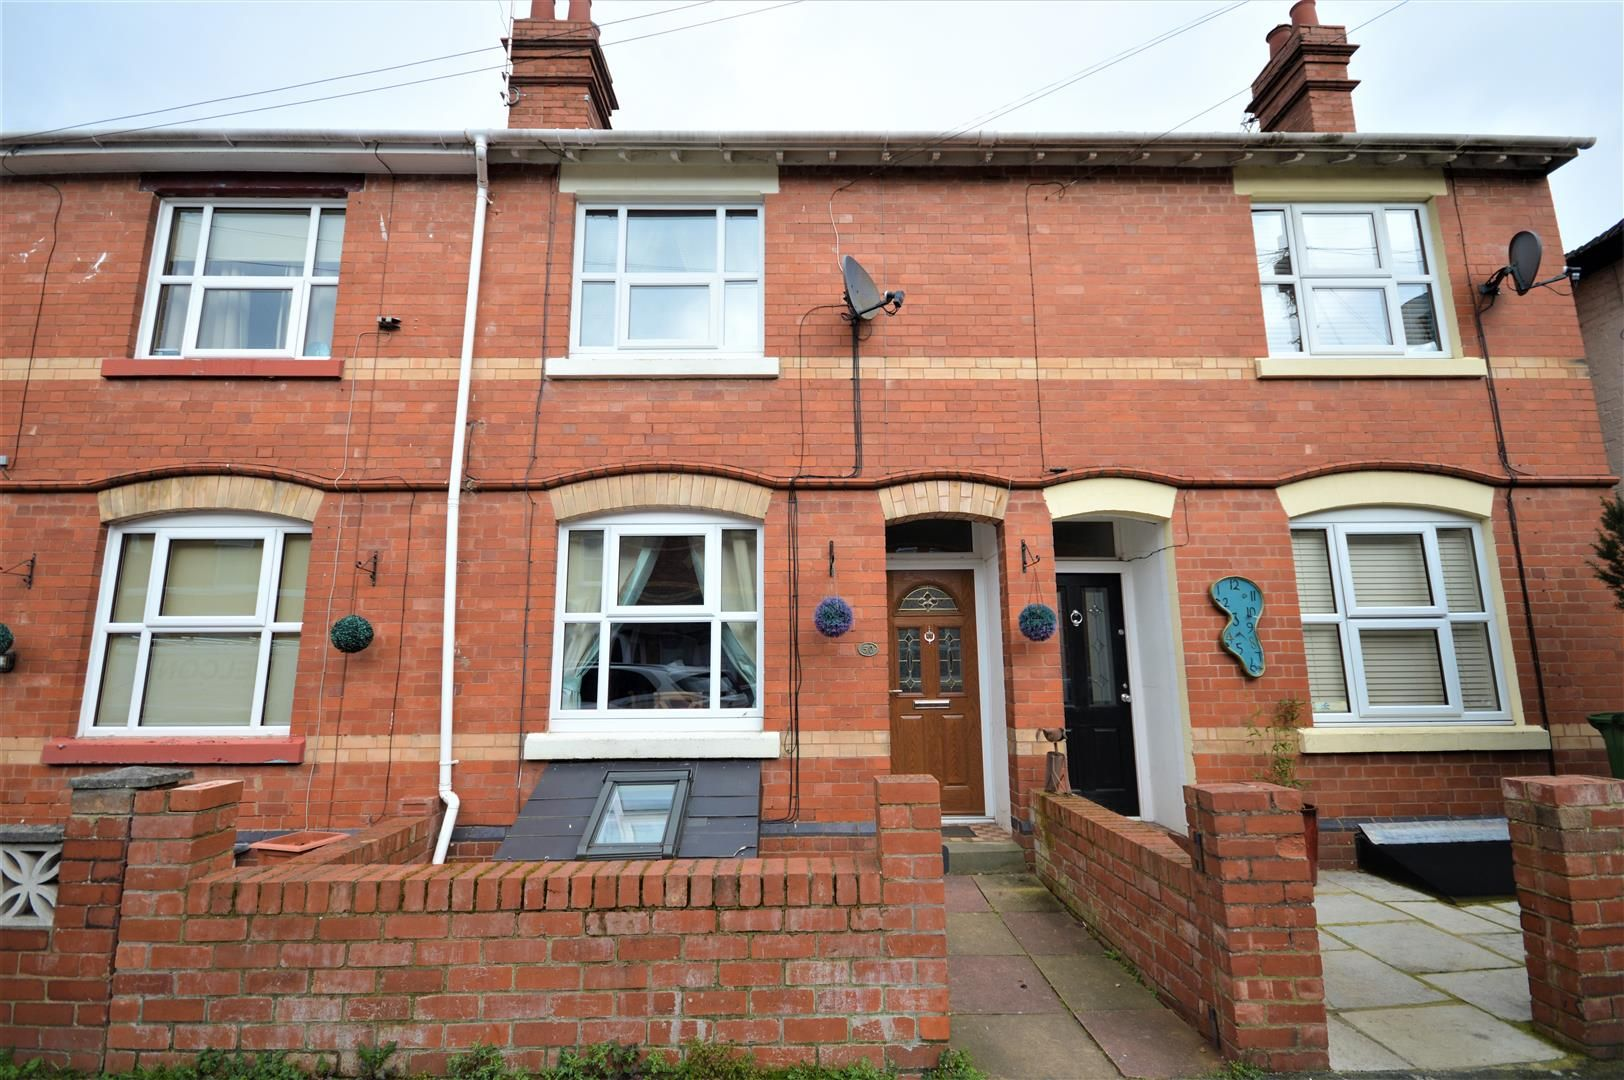 3 bed terraced for sale, HR4